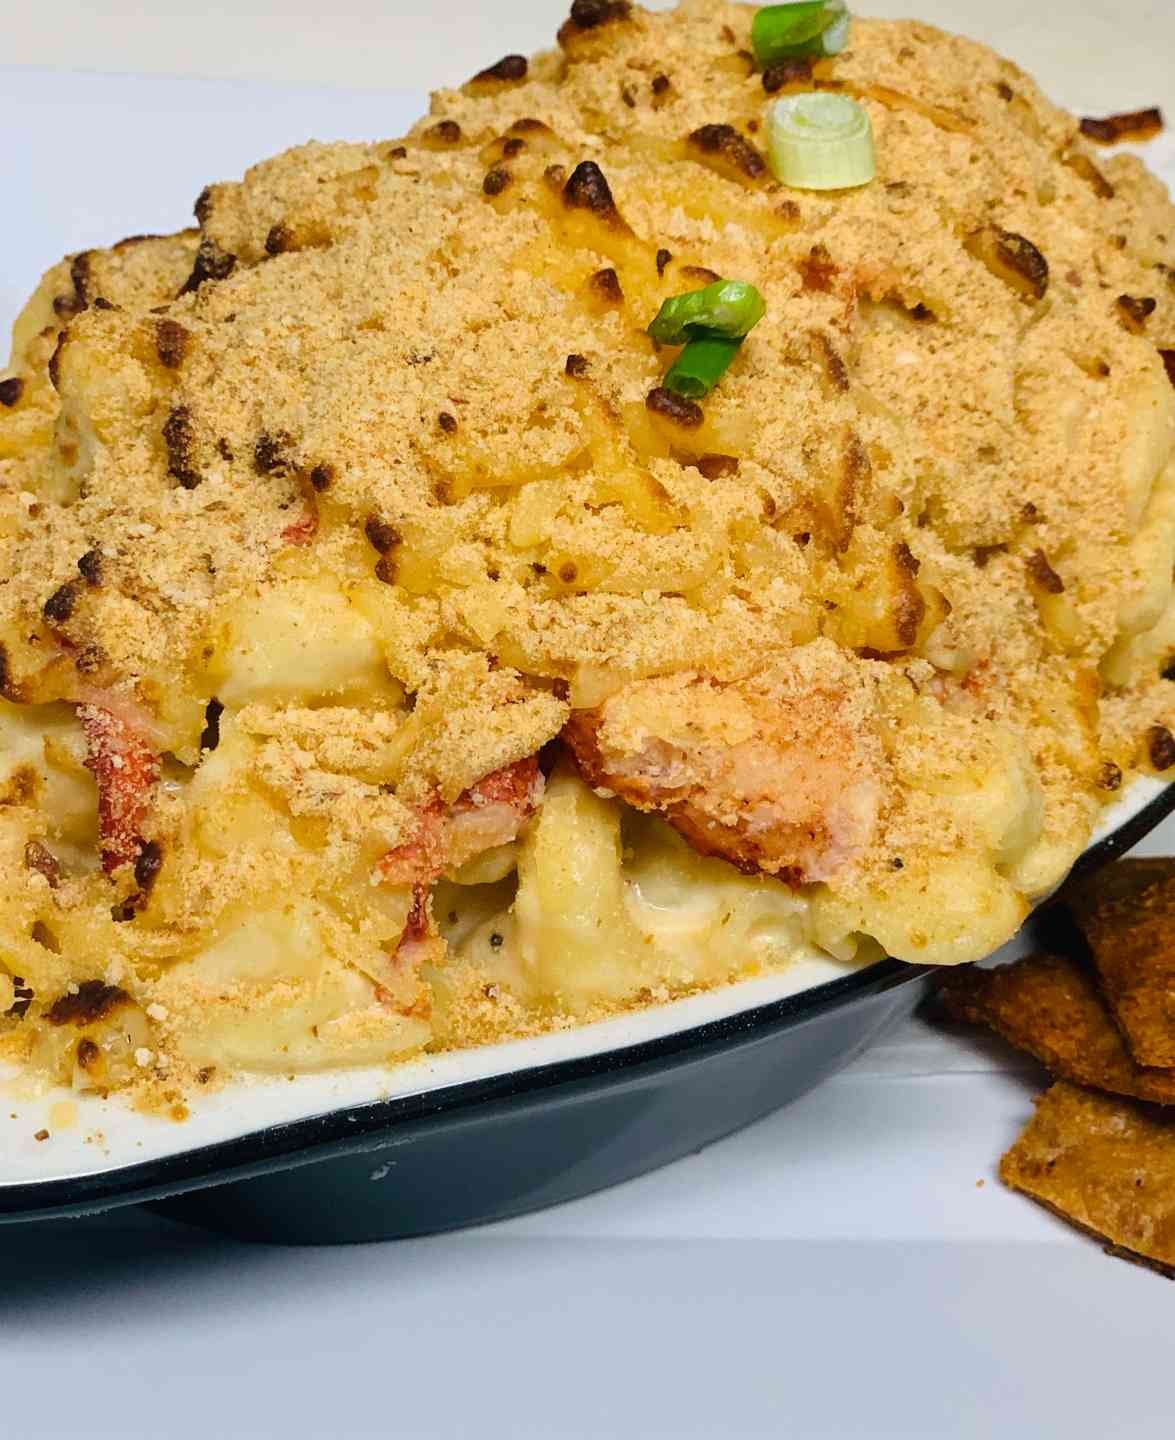 Lobster 'n' Gouda Mac